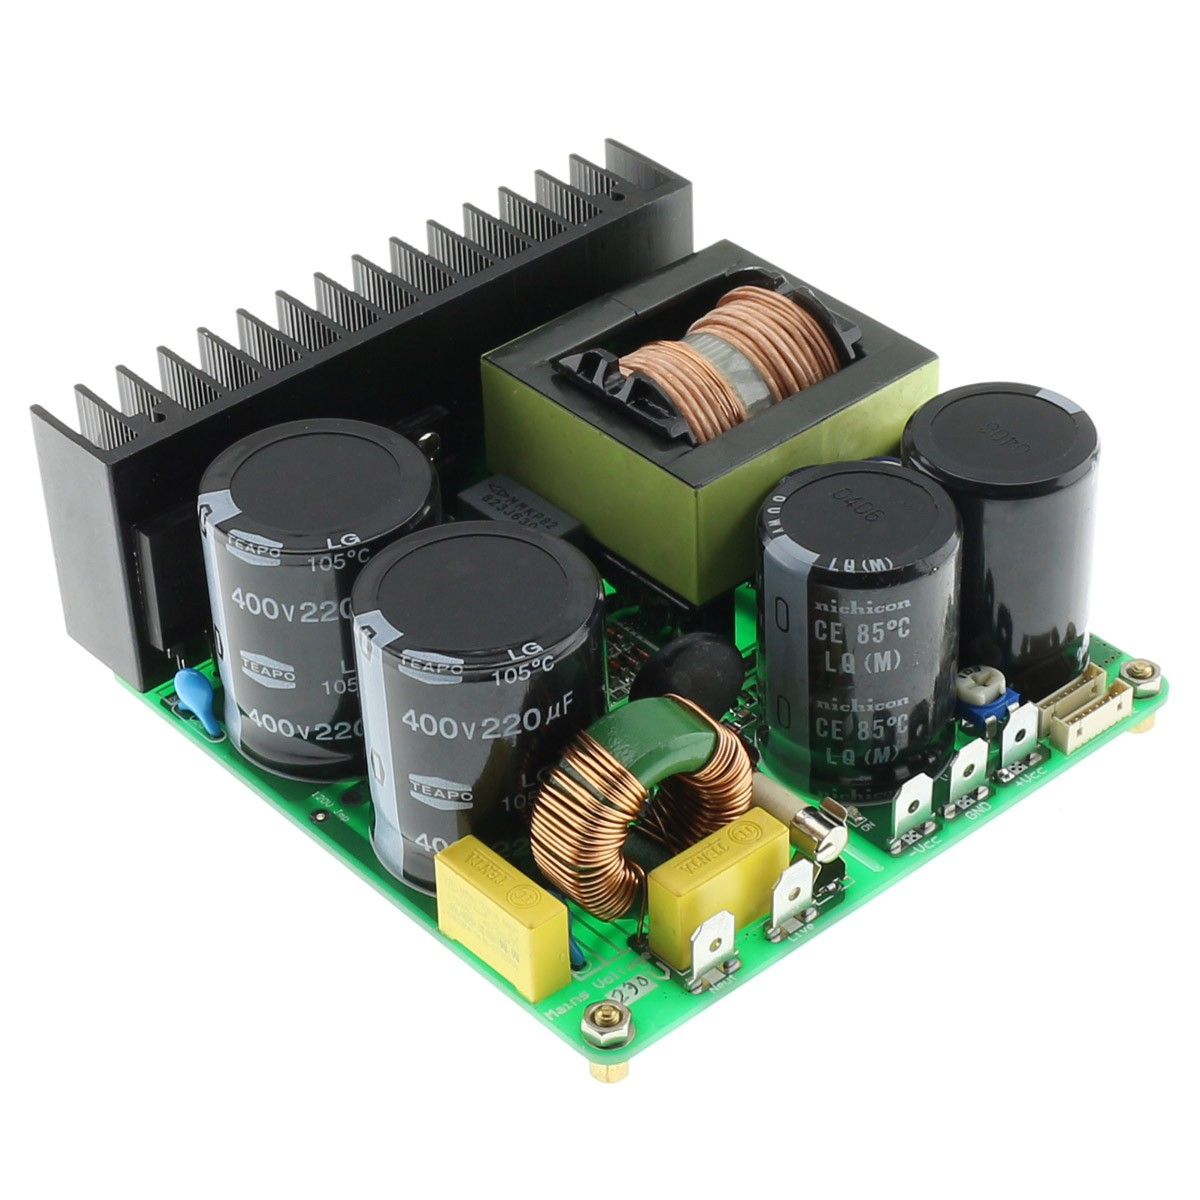 SMPS600RXE Switching Power Supply Module 600W +/- 60V